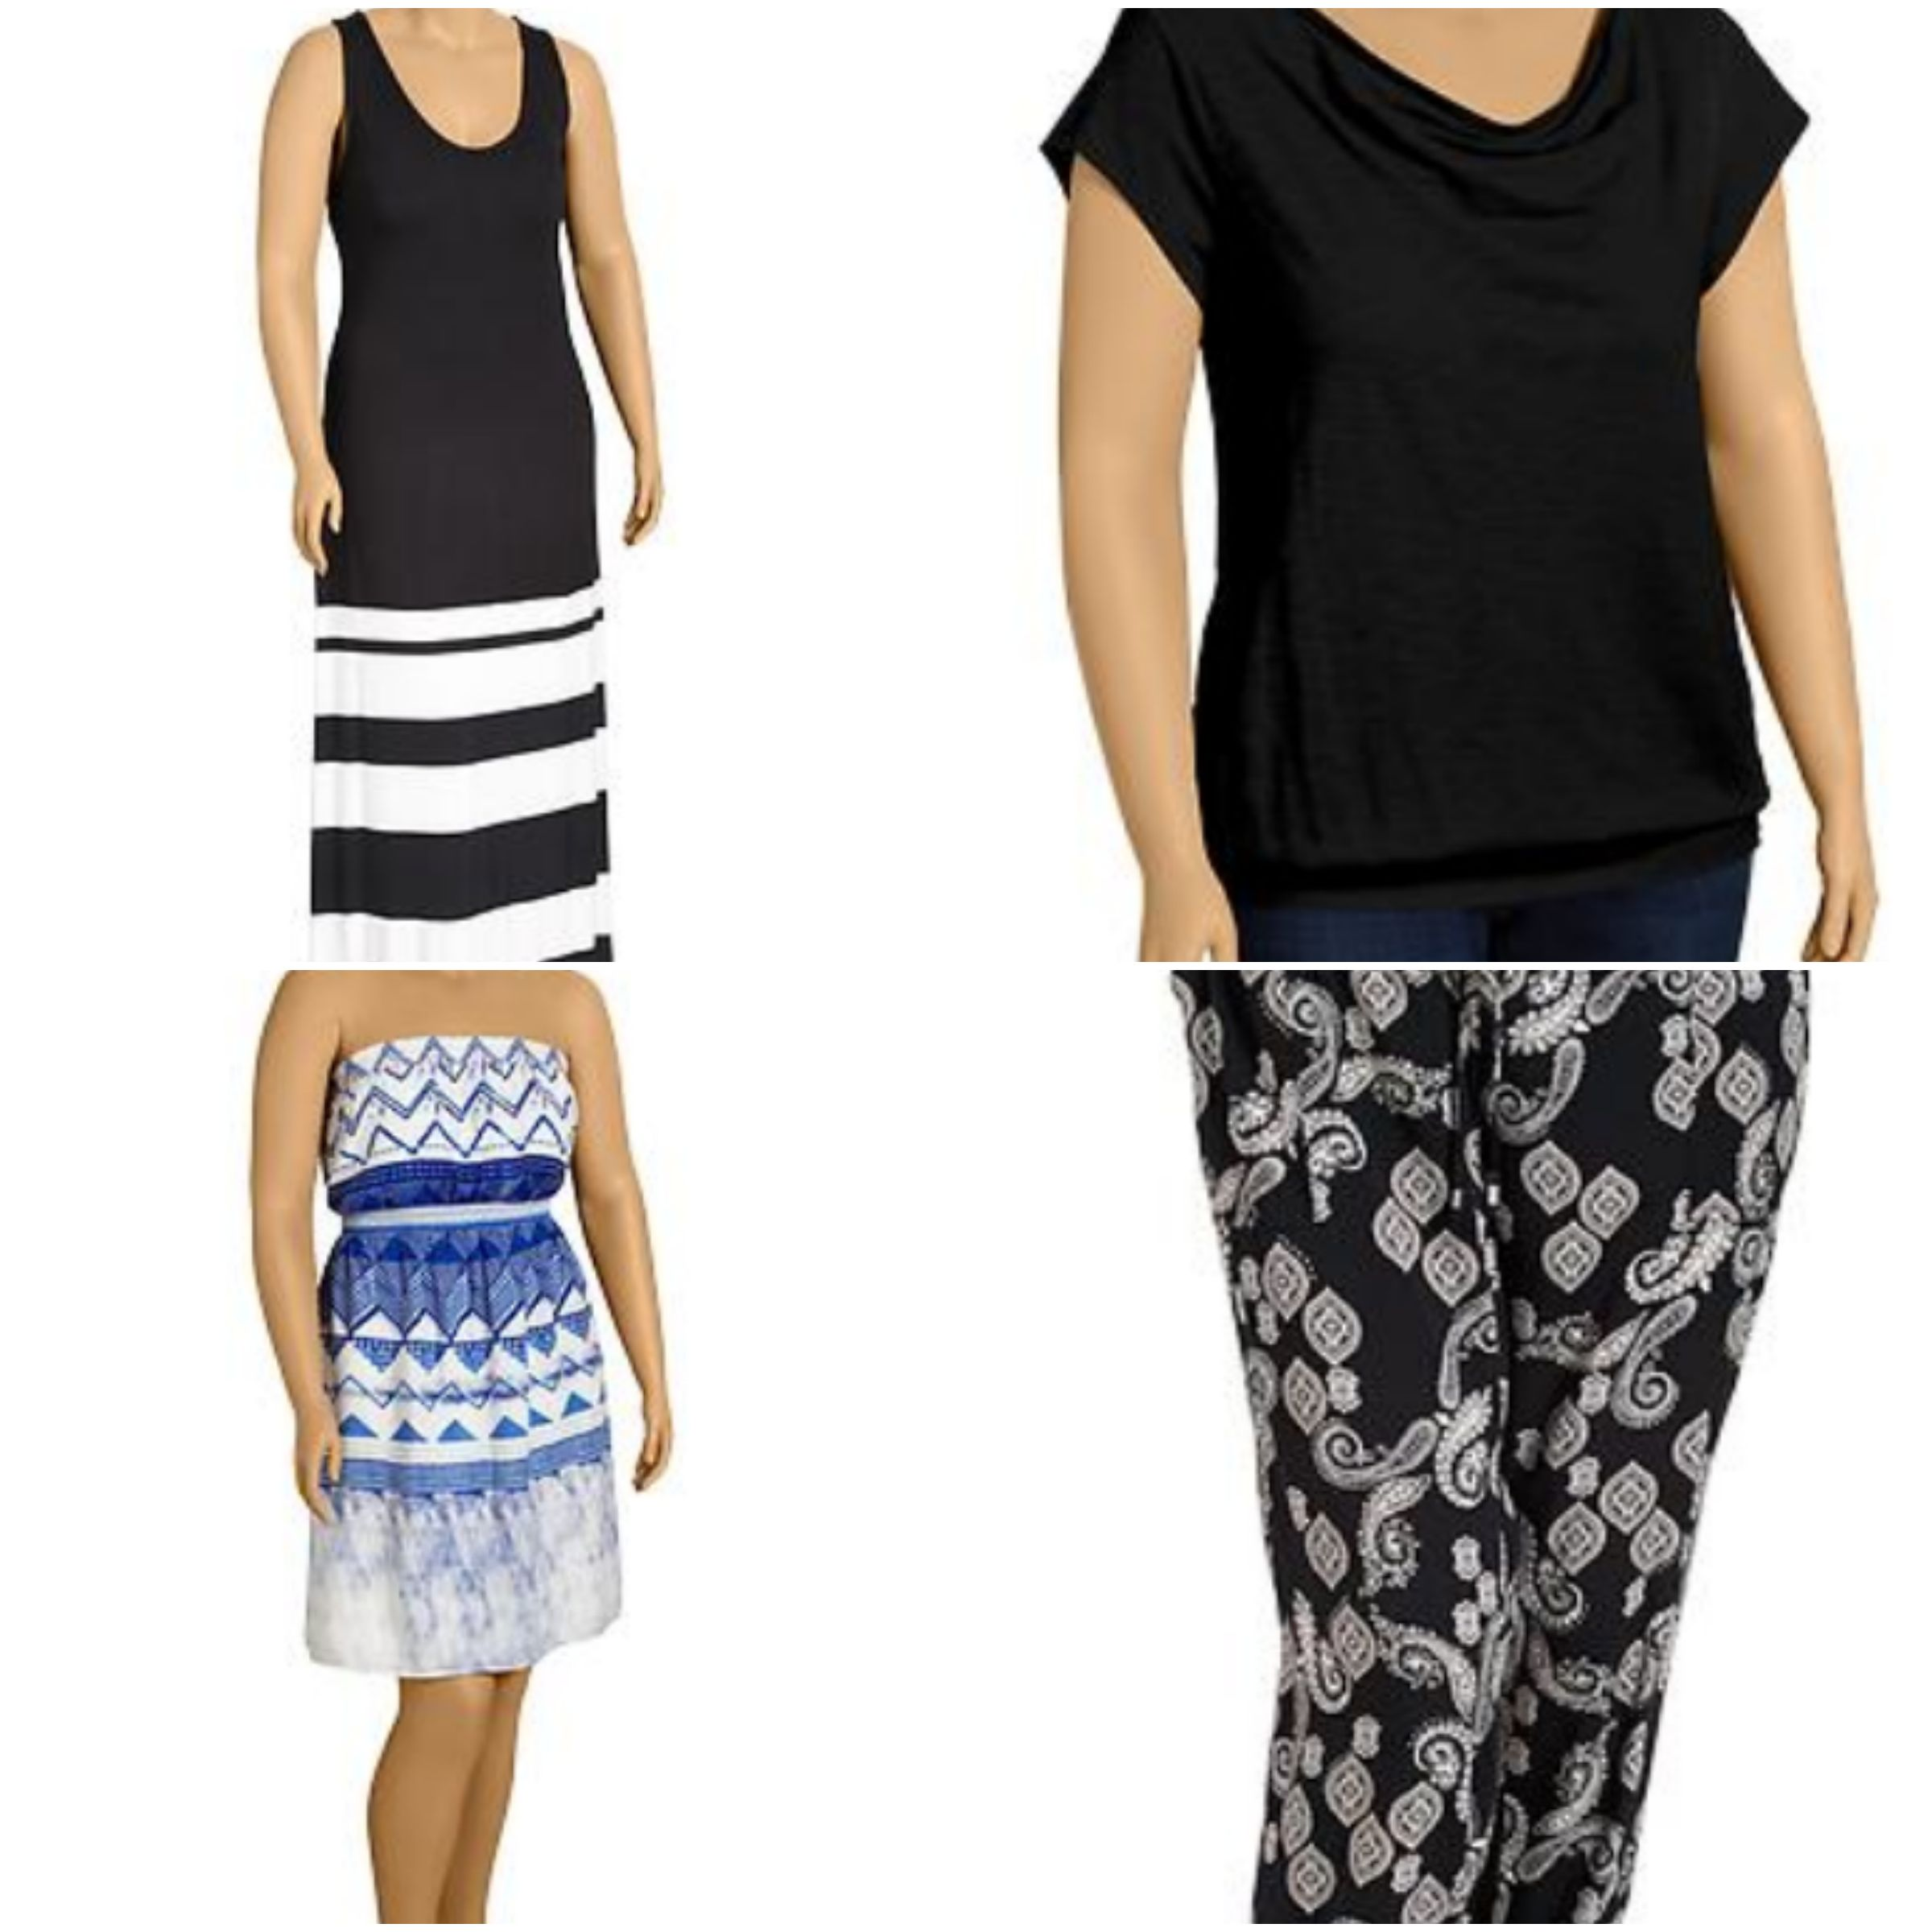 Old Navy Plus Size Clothes On Sale (Including some 4Xs ...